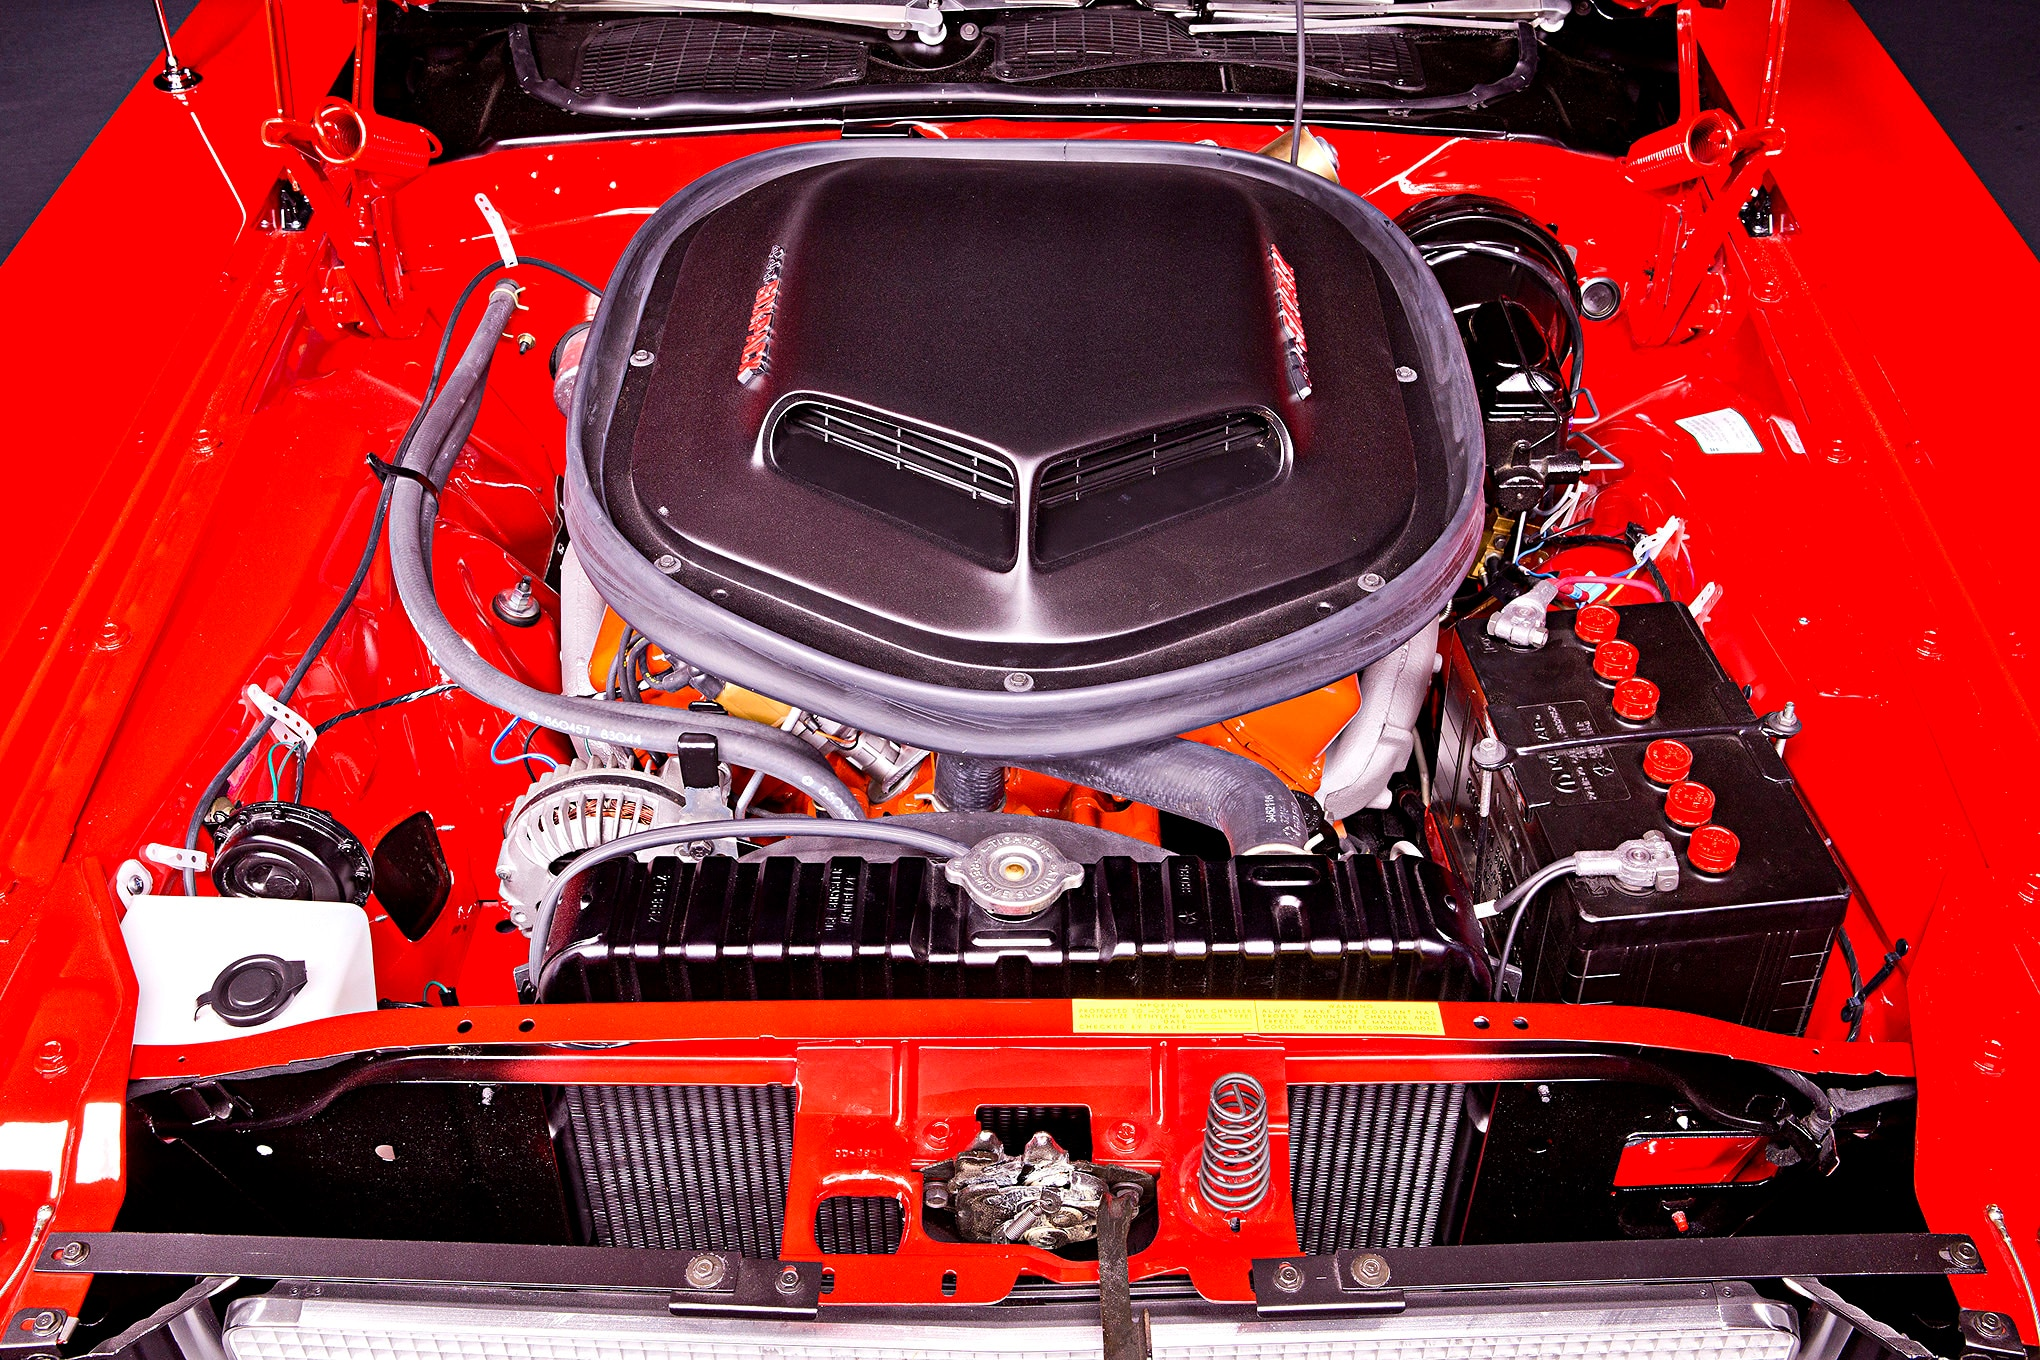 While at first glance it seems like an operating room clean engine bay with a nice stock 440 in it, it isn't. You are looking at an aluminum-headed, full-roller, 446ci big-block that makes 510 hp. It is a romping, stomping, horsepower-making machine.